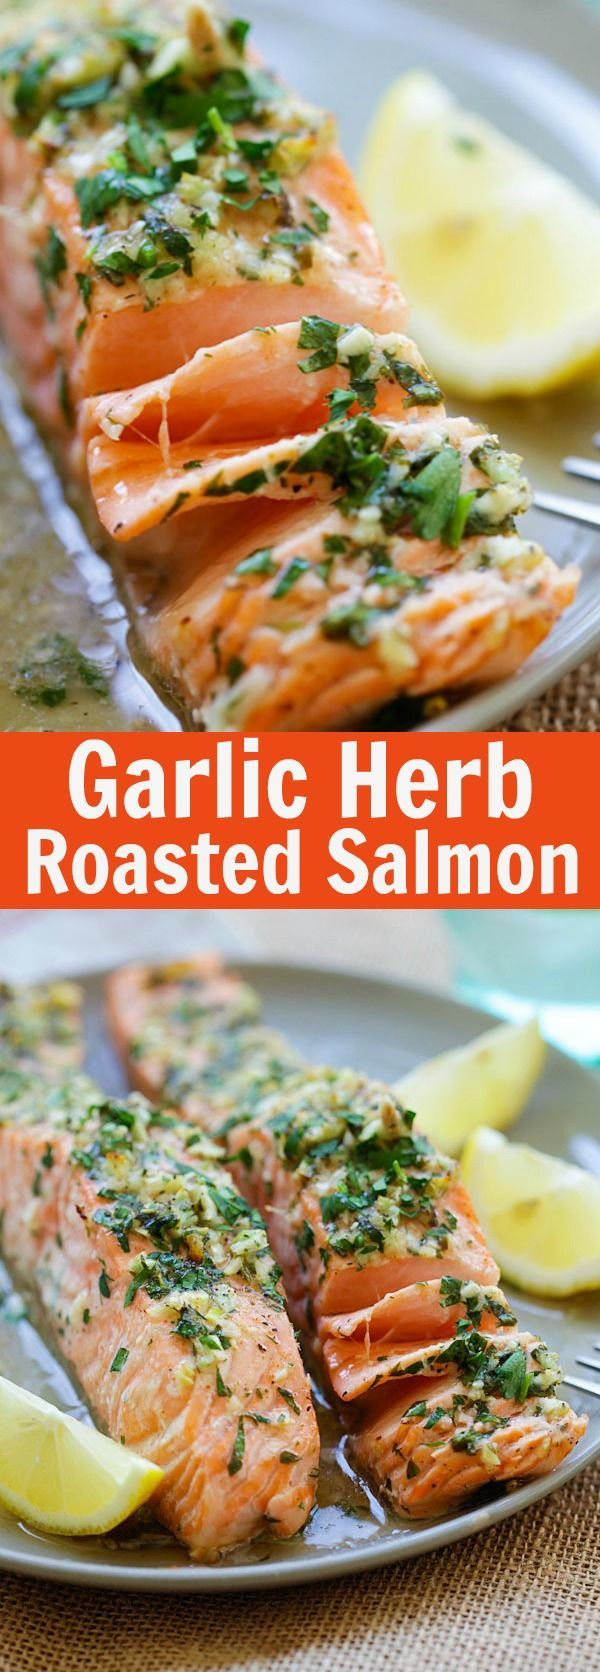 Garlic Herb Roasted Salmon – best roasted salmon recipe ever! Made with butter, garlic, herb, lemon and dinner is ready in 20 mins.